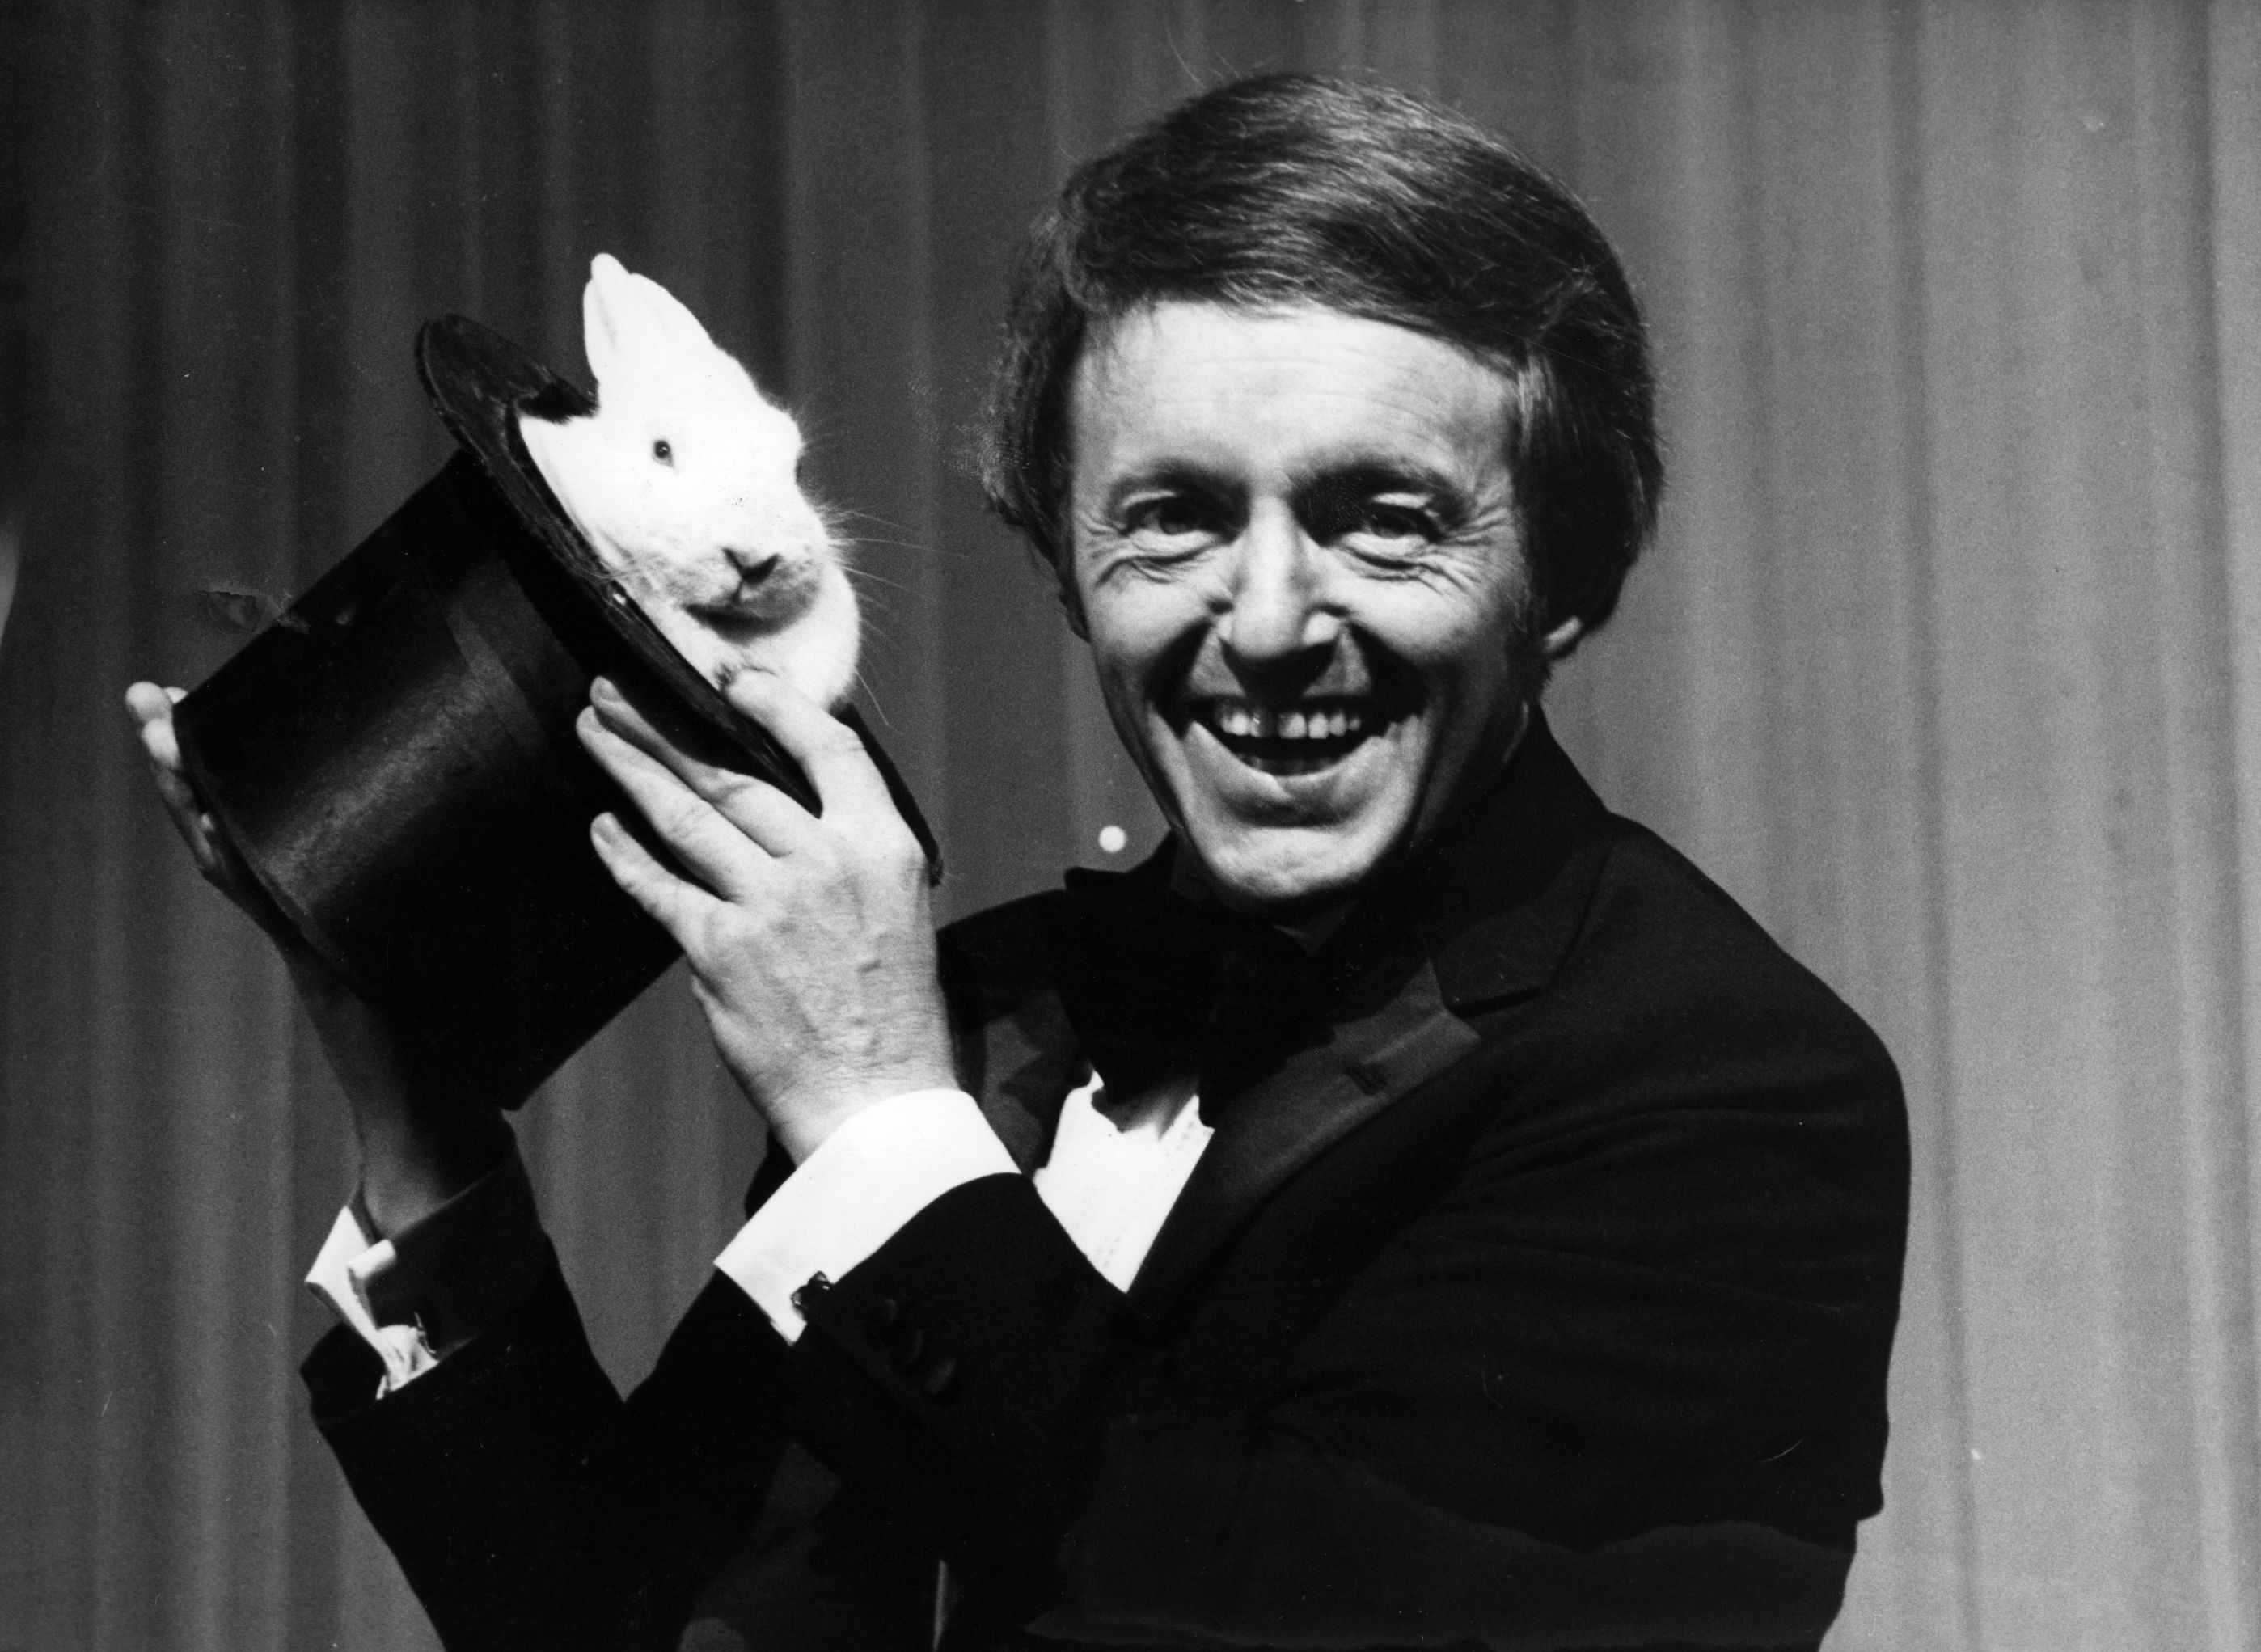 This sleight of hand is not as fun nor as harmless as 1980s British magician Paul Daniels.